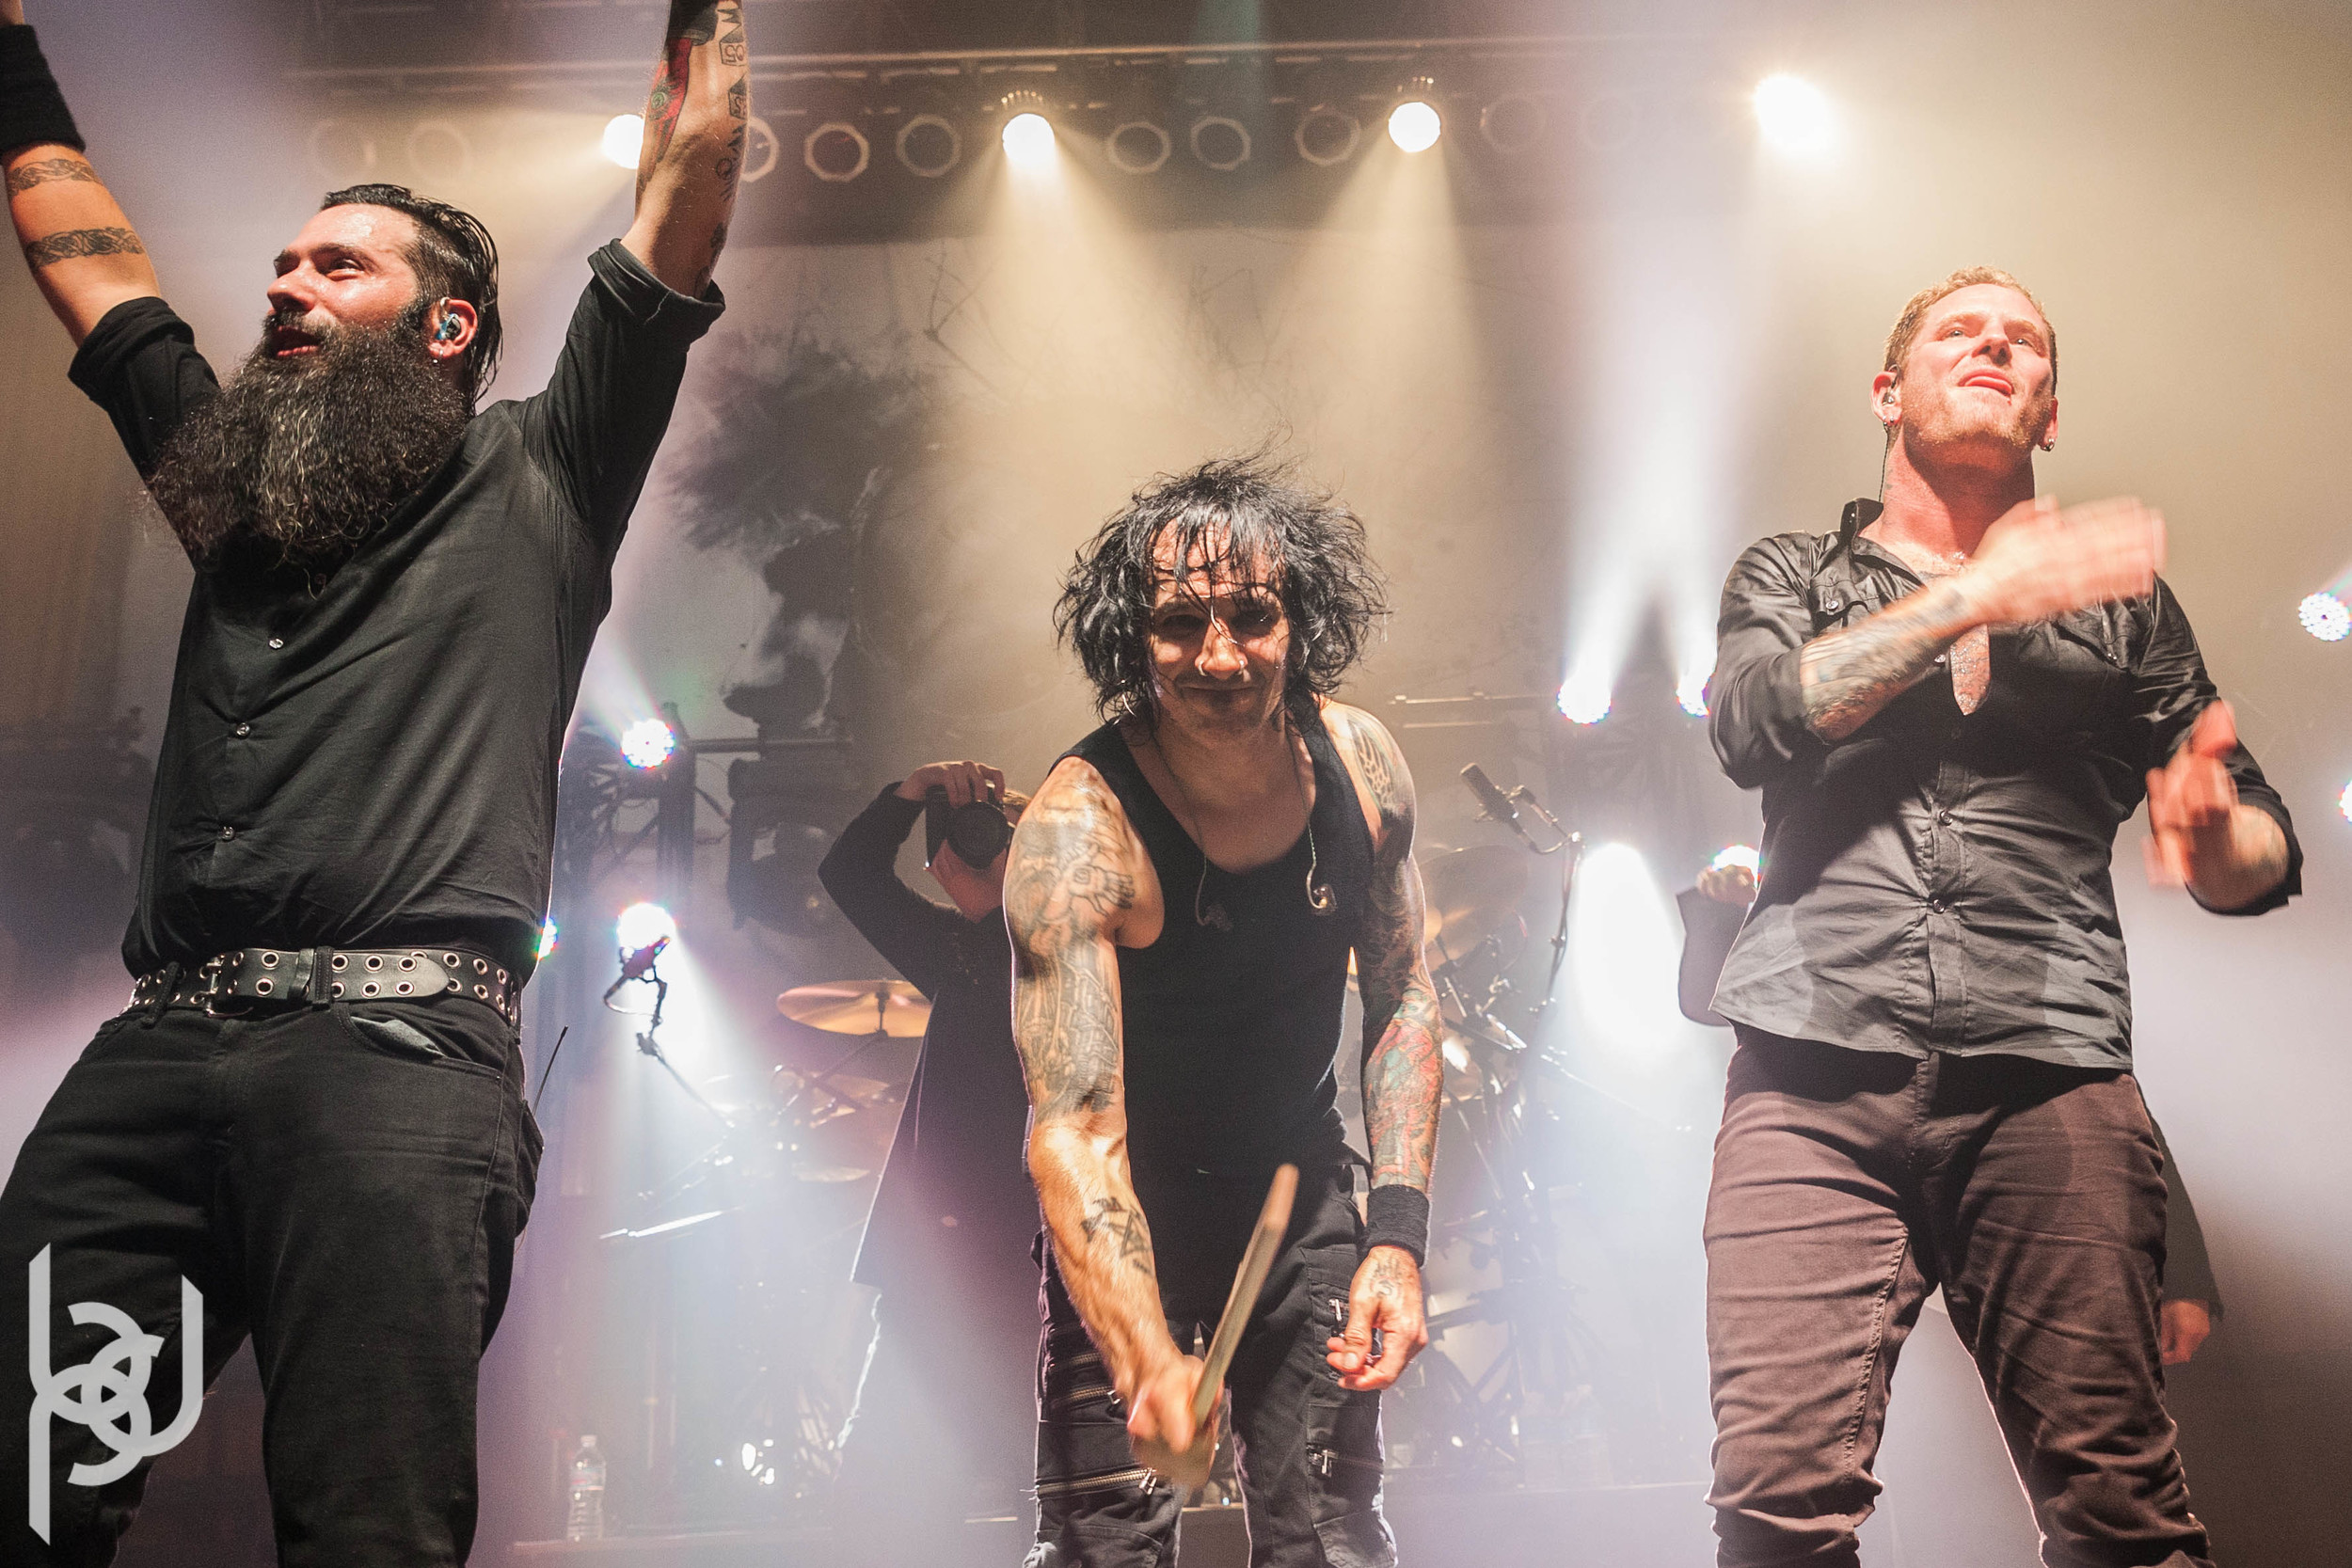 93x Presents Stone Sour at Skyway Theatre 013114 BDP (19).jpg